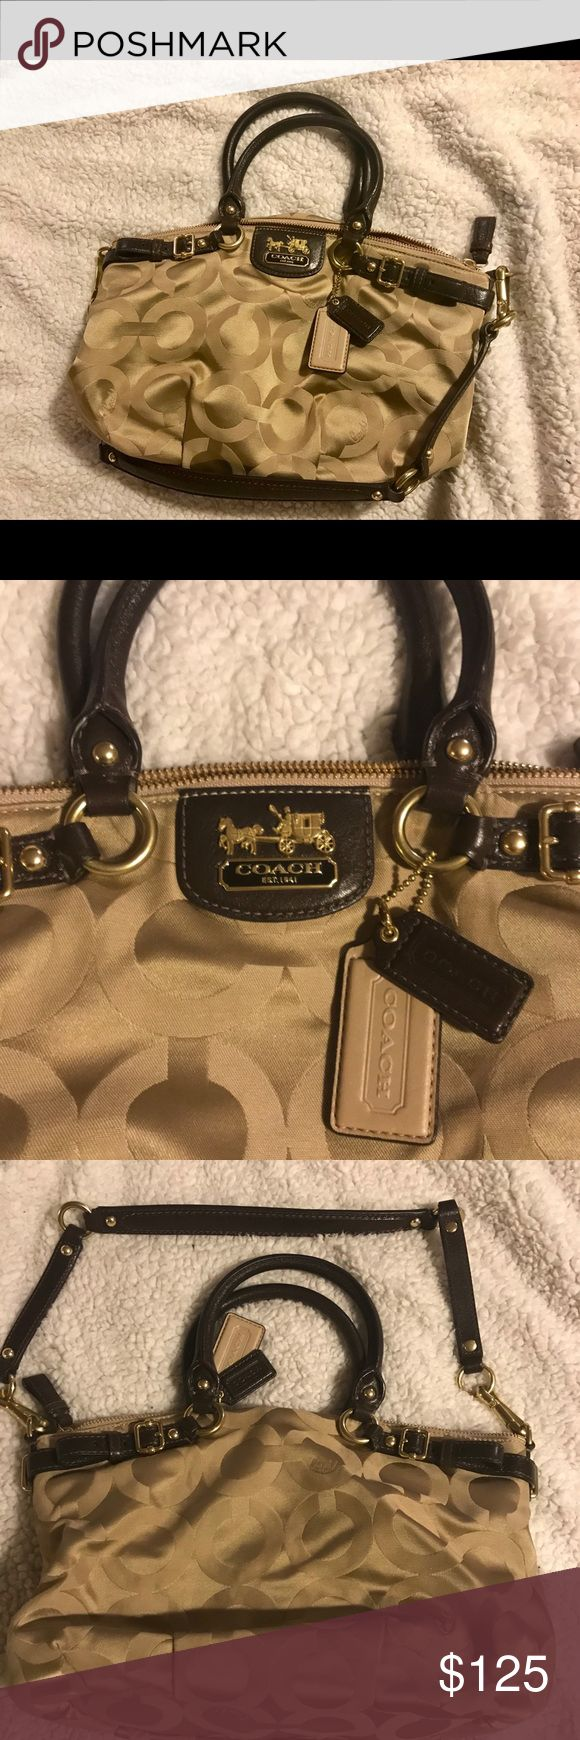 "👜NWOT Coach purse, gold & brown👜 Brand new, very clean Coach purse.  Gold with brown straps.  Could be used as a satchel (smaller straps) or shoulder bag (adjustable shoulder strap)👍🏻. Approximately 12"" wide x 8 1/2"" tall x 3"" depth.  Plenty of inside pockets, one that zips.  Would really go great with any outfit.  Very versatile. Coach Bags Shoulder Bags"